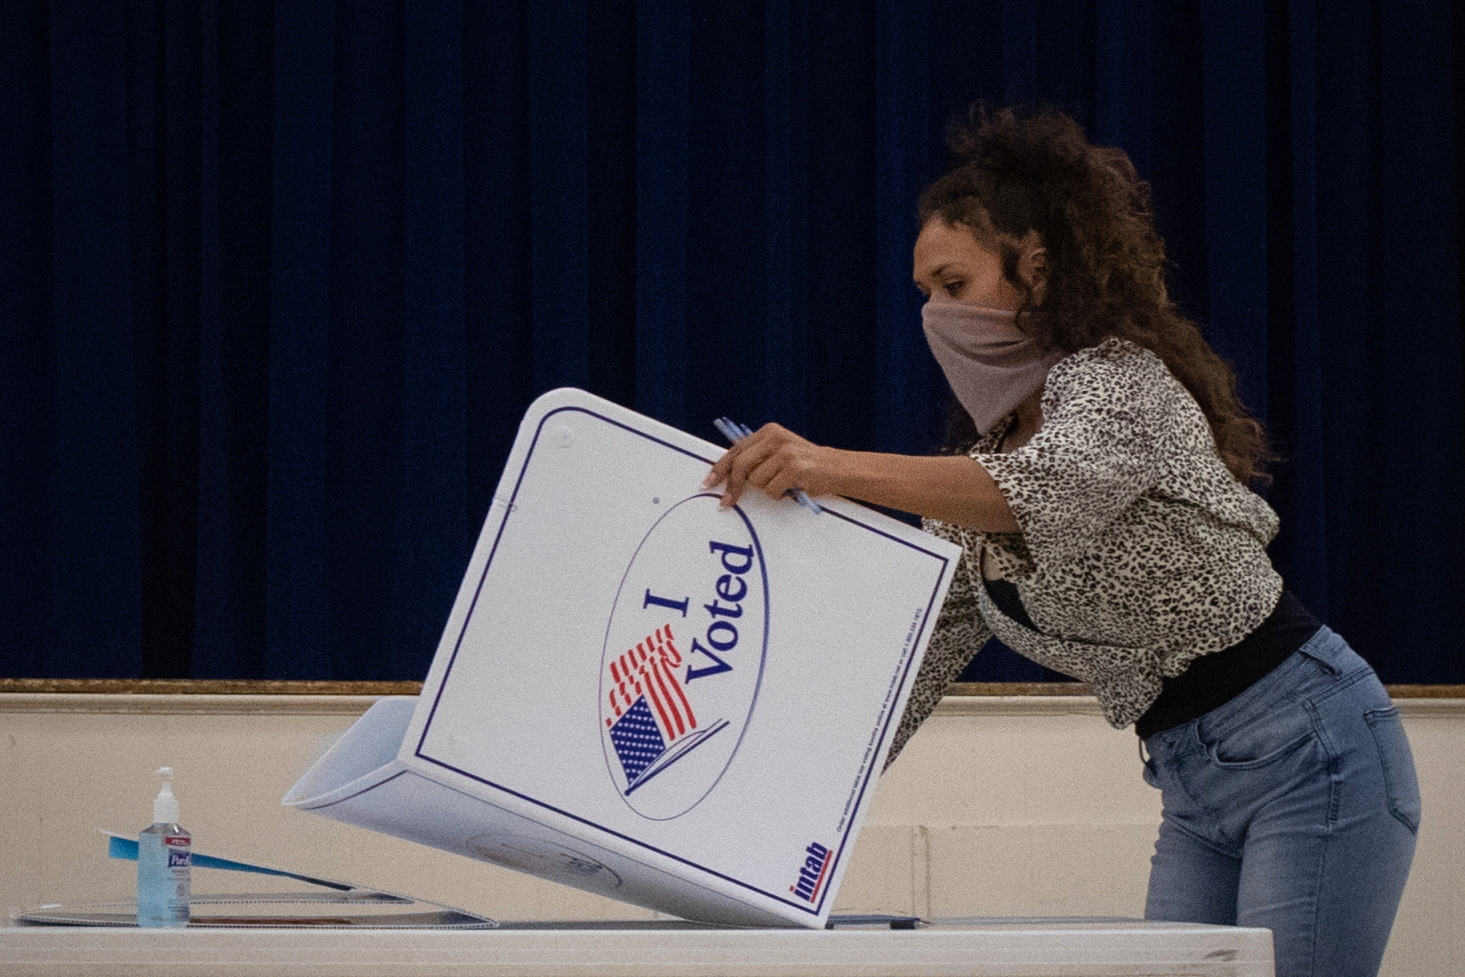 Presidio County election judge Lauren Martinez folds a booth after polls and voting ended for the 2020 U.S. presidential election in Marfa, Texas, U.S., November 3, 2020. REUTERS/Adrees Latif